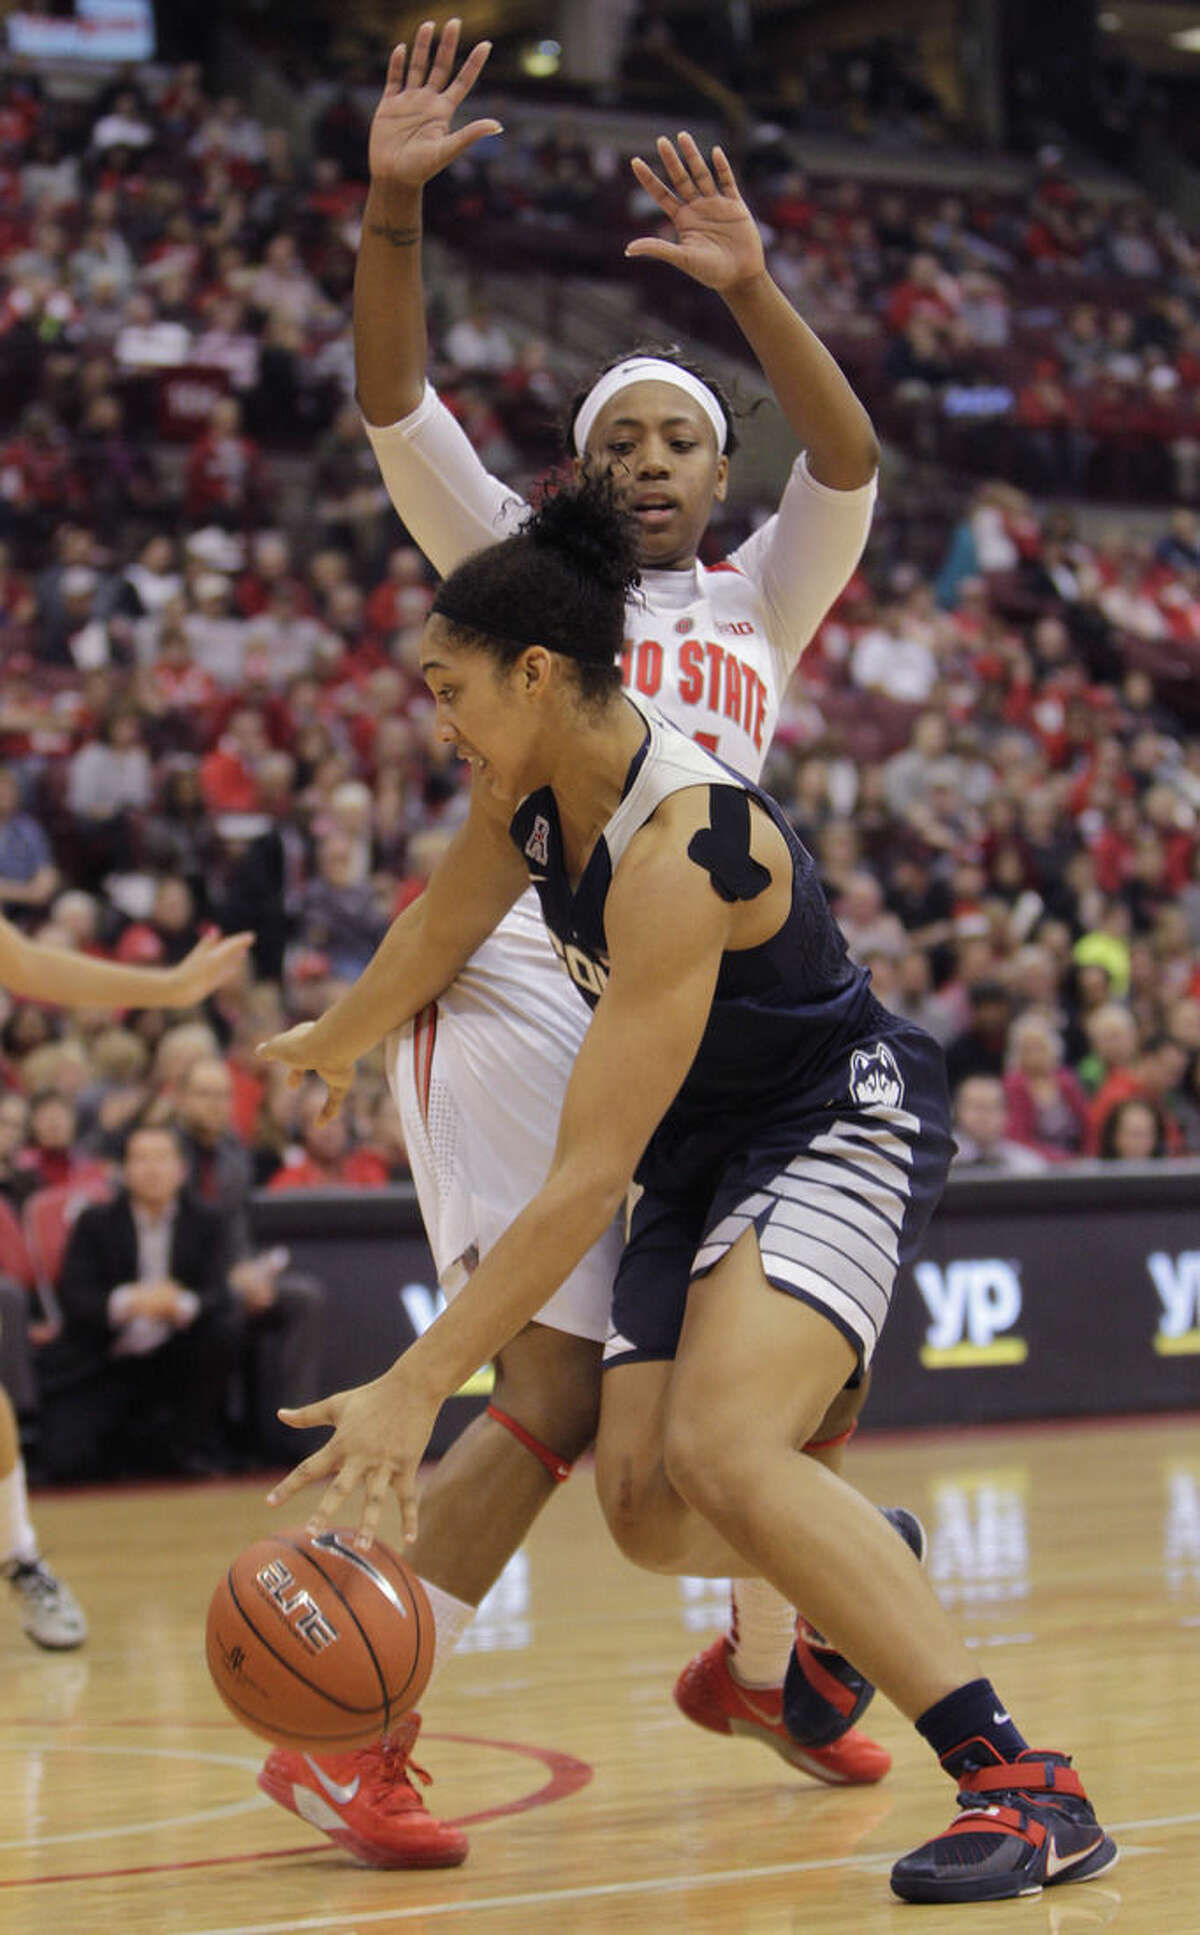 Connecticut's Gabby Williams, front, drives to the basket against Ohio State's Ameryst Alston during the second quarter of an NCAA college basketball game Monday, Nov. 16, 2015, in Columbus, Ohio. (AP Photo/Jay LaPrete)